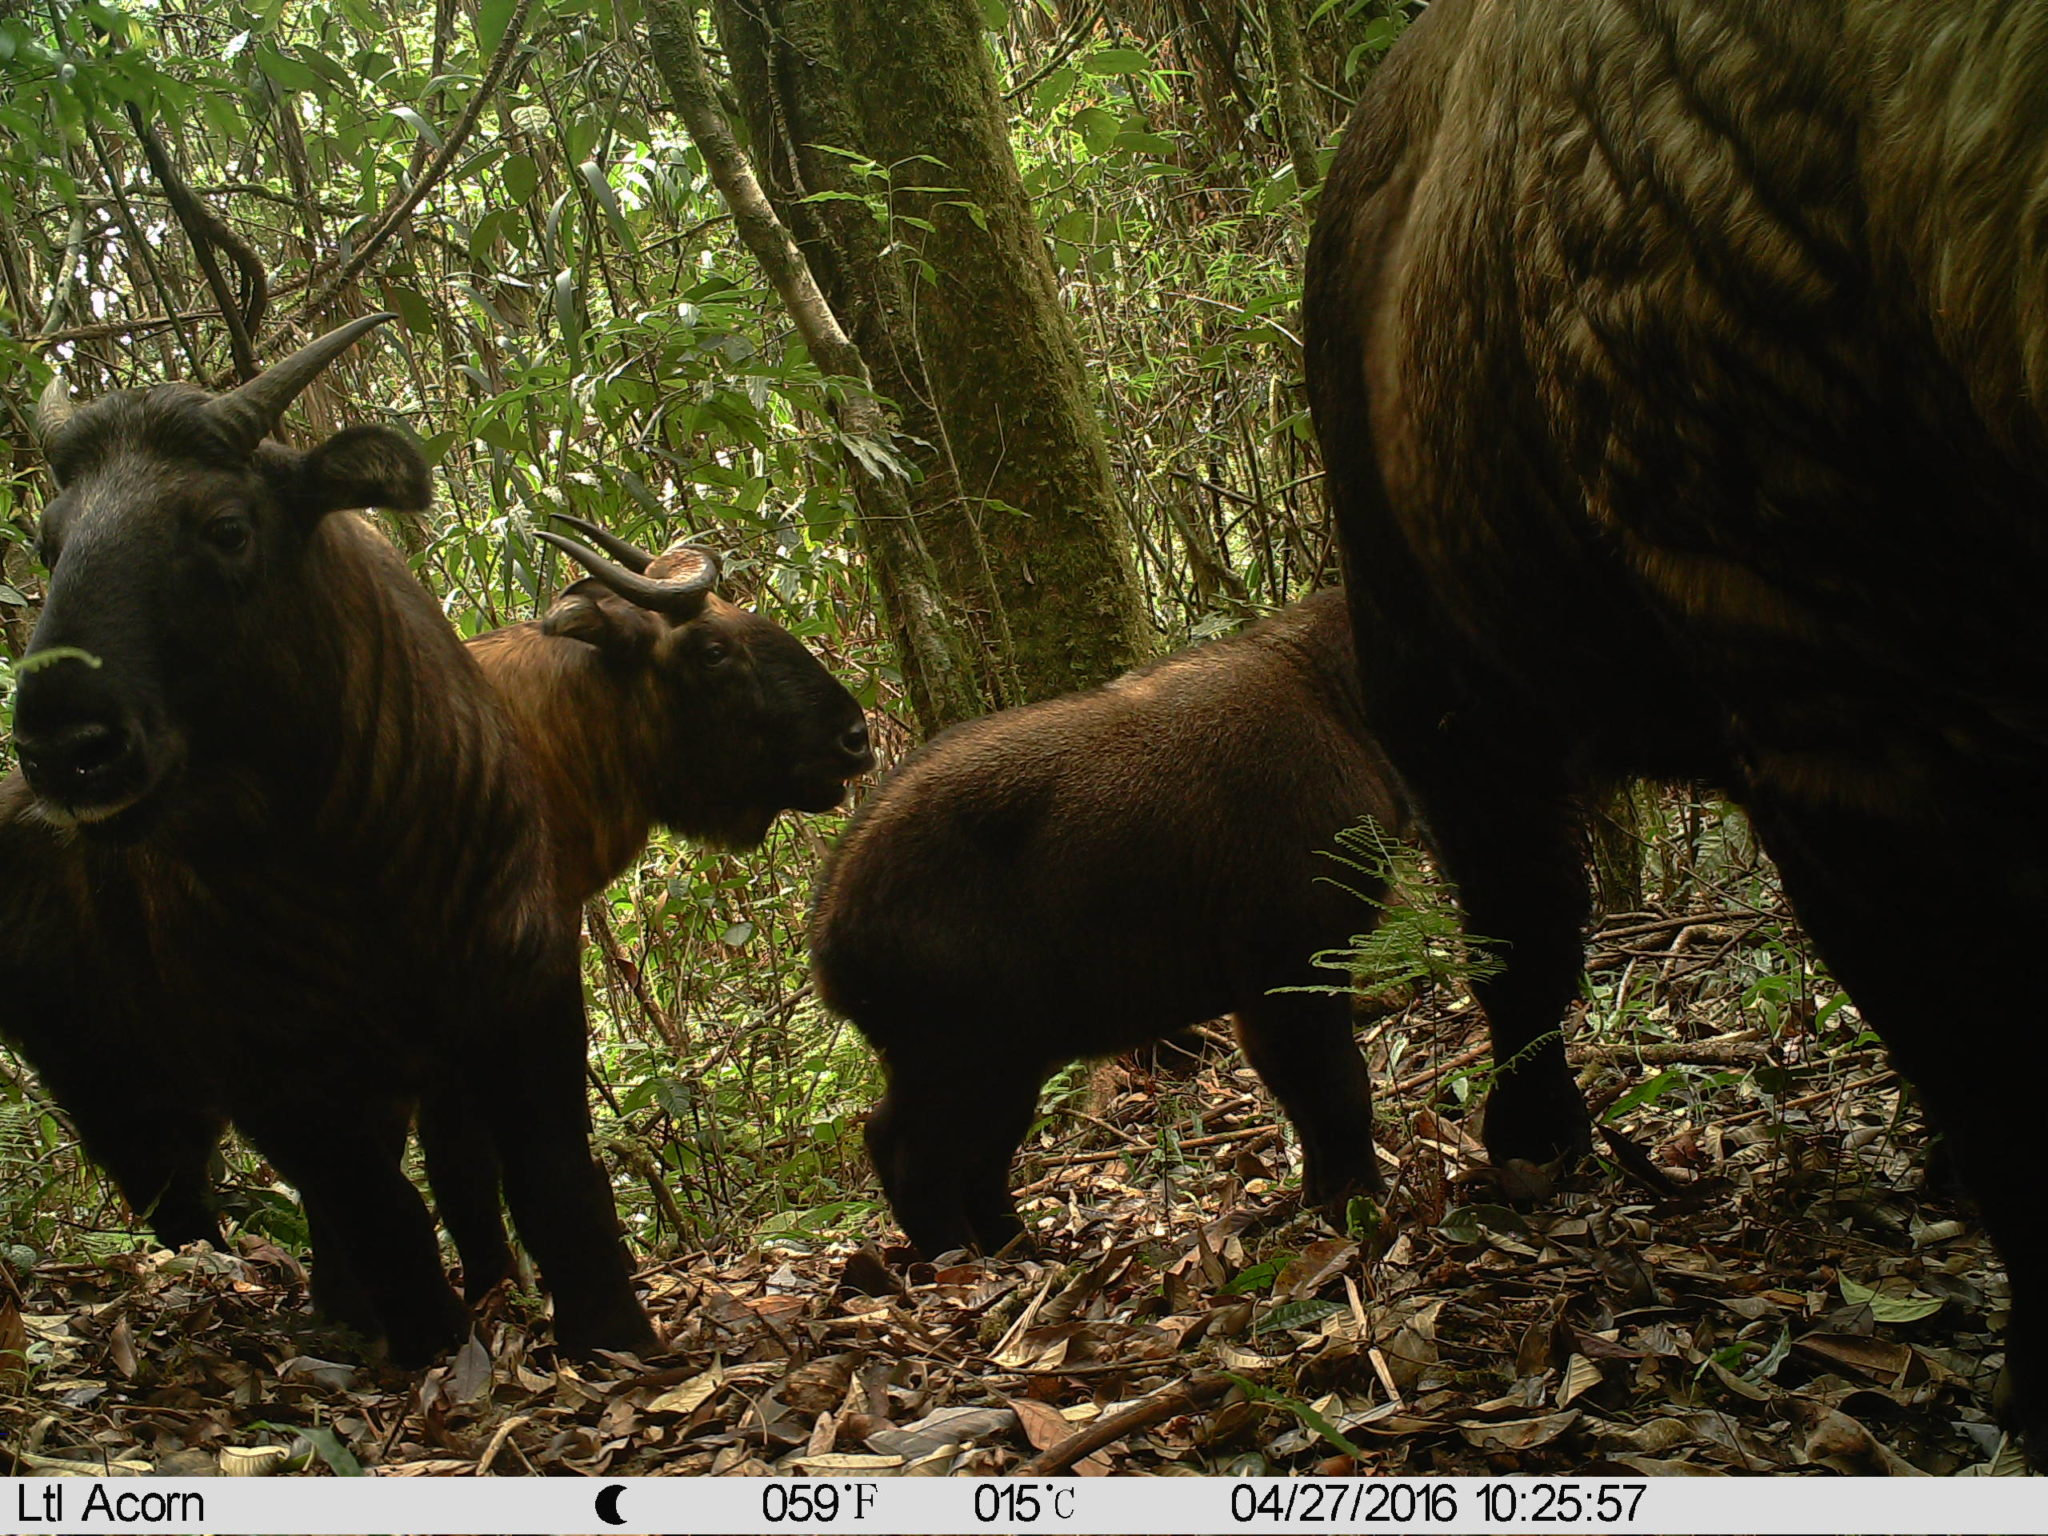 Takin (Budorcas taxicolor), a rare type of gnu goat or cattle chamois that lives in the eastern Himalaya. Image courtesy of Southeast Asia Biodiversity Research Institute, Chinese Academy of Sciences